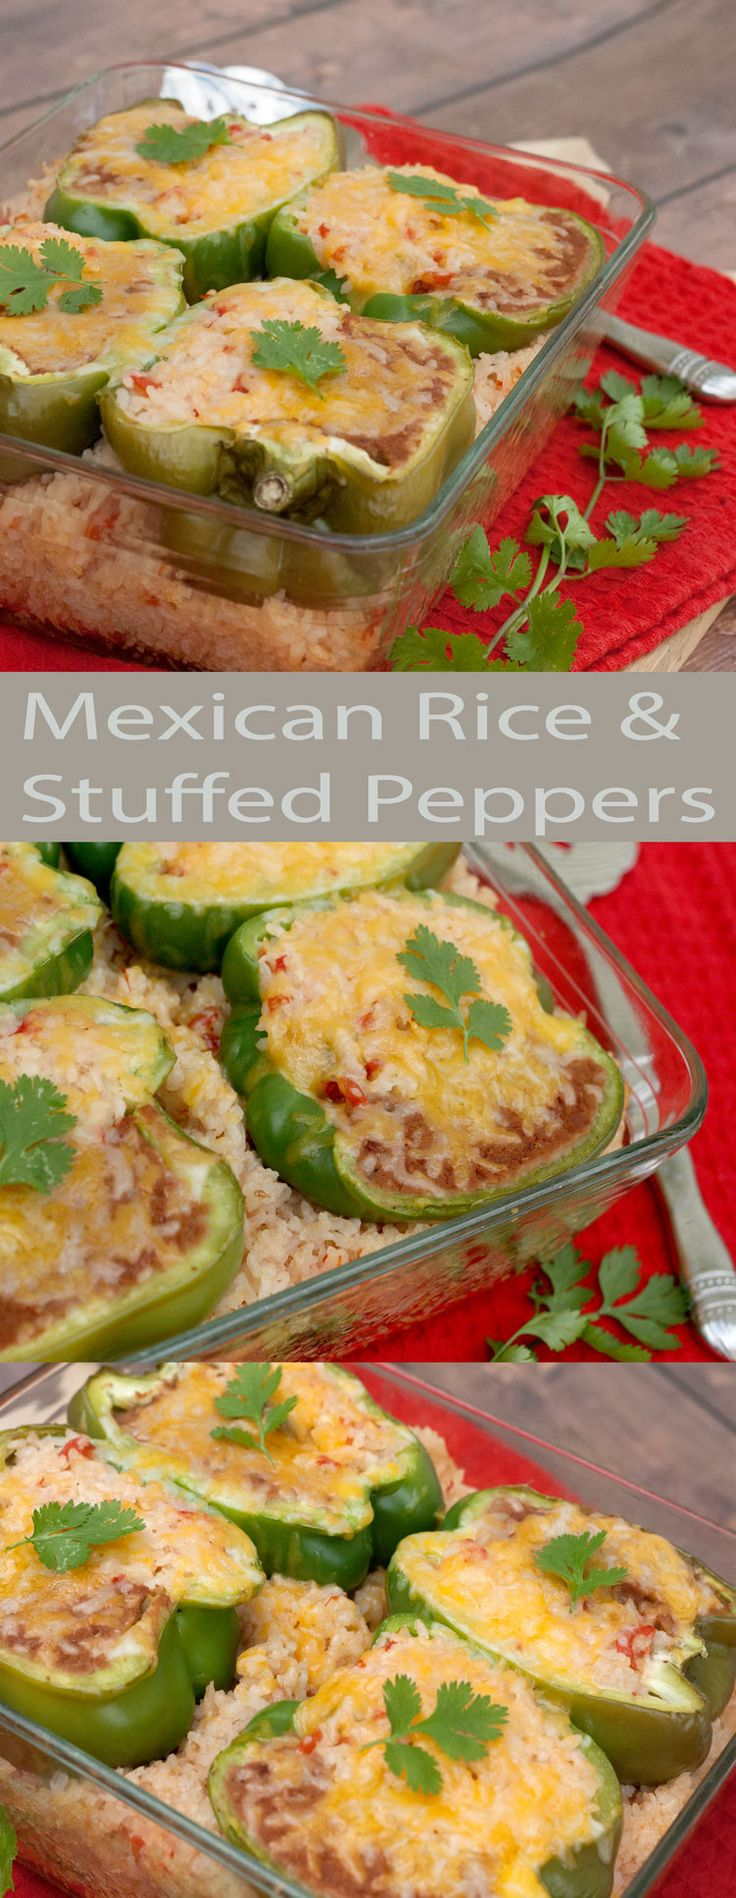 Mexican Rice Stuffed Peppers with a twist. These peppers will fill you up. For a vegetarian option, substitute chicken broth. Easy peasy. | www.AllSheCooks.com | #MyPicknSave #ad